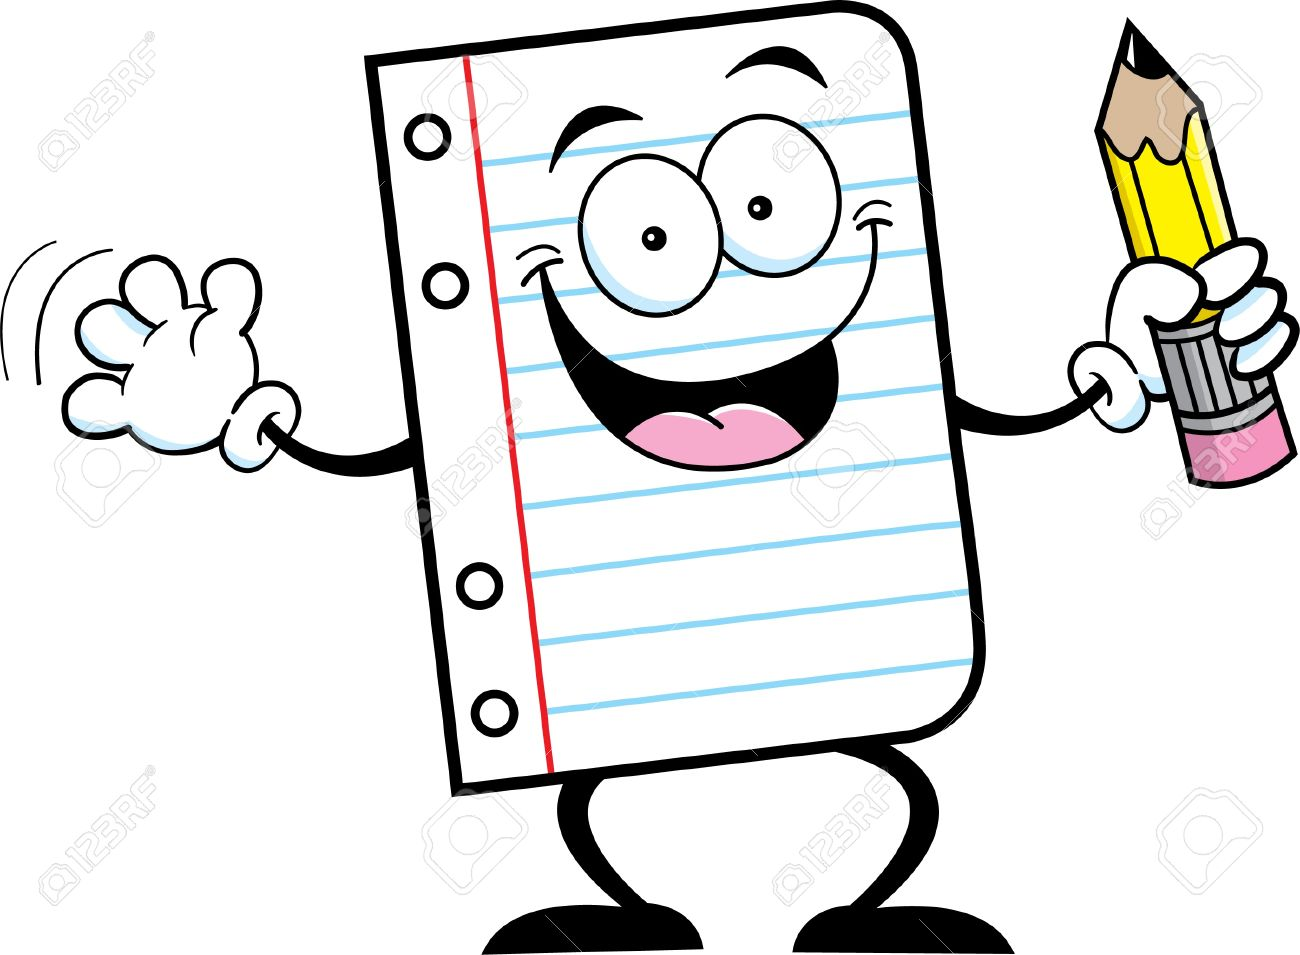 Black And White Illustration Of A Notebook Paper Holding A Pencil.